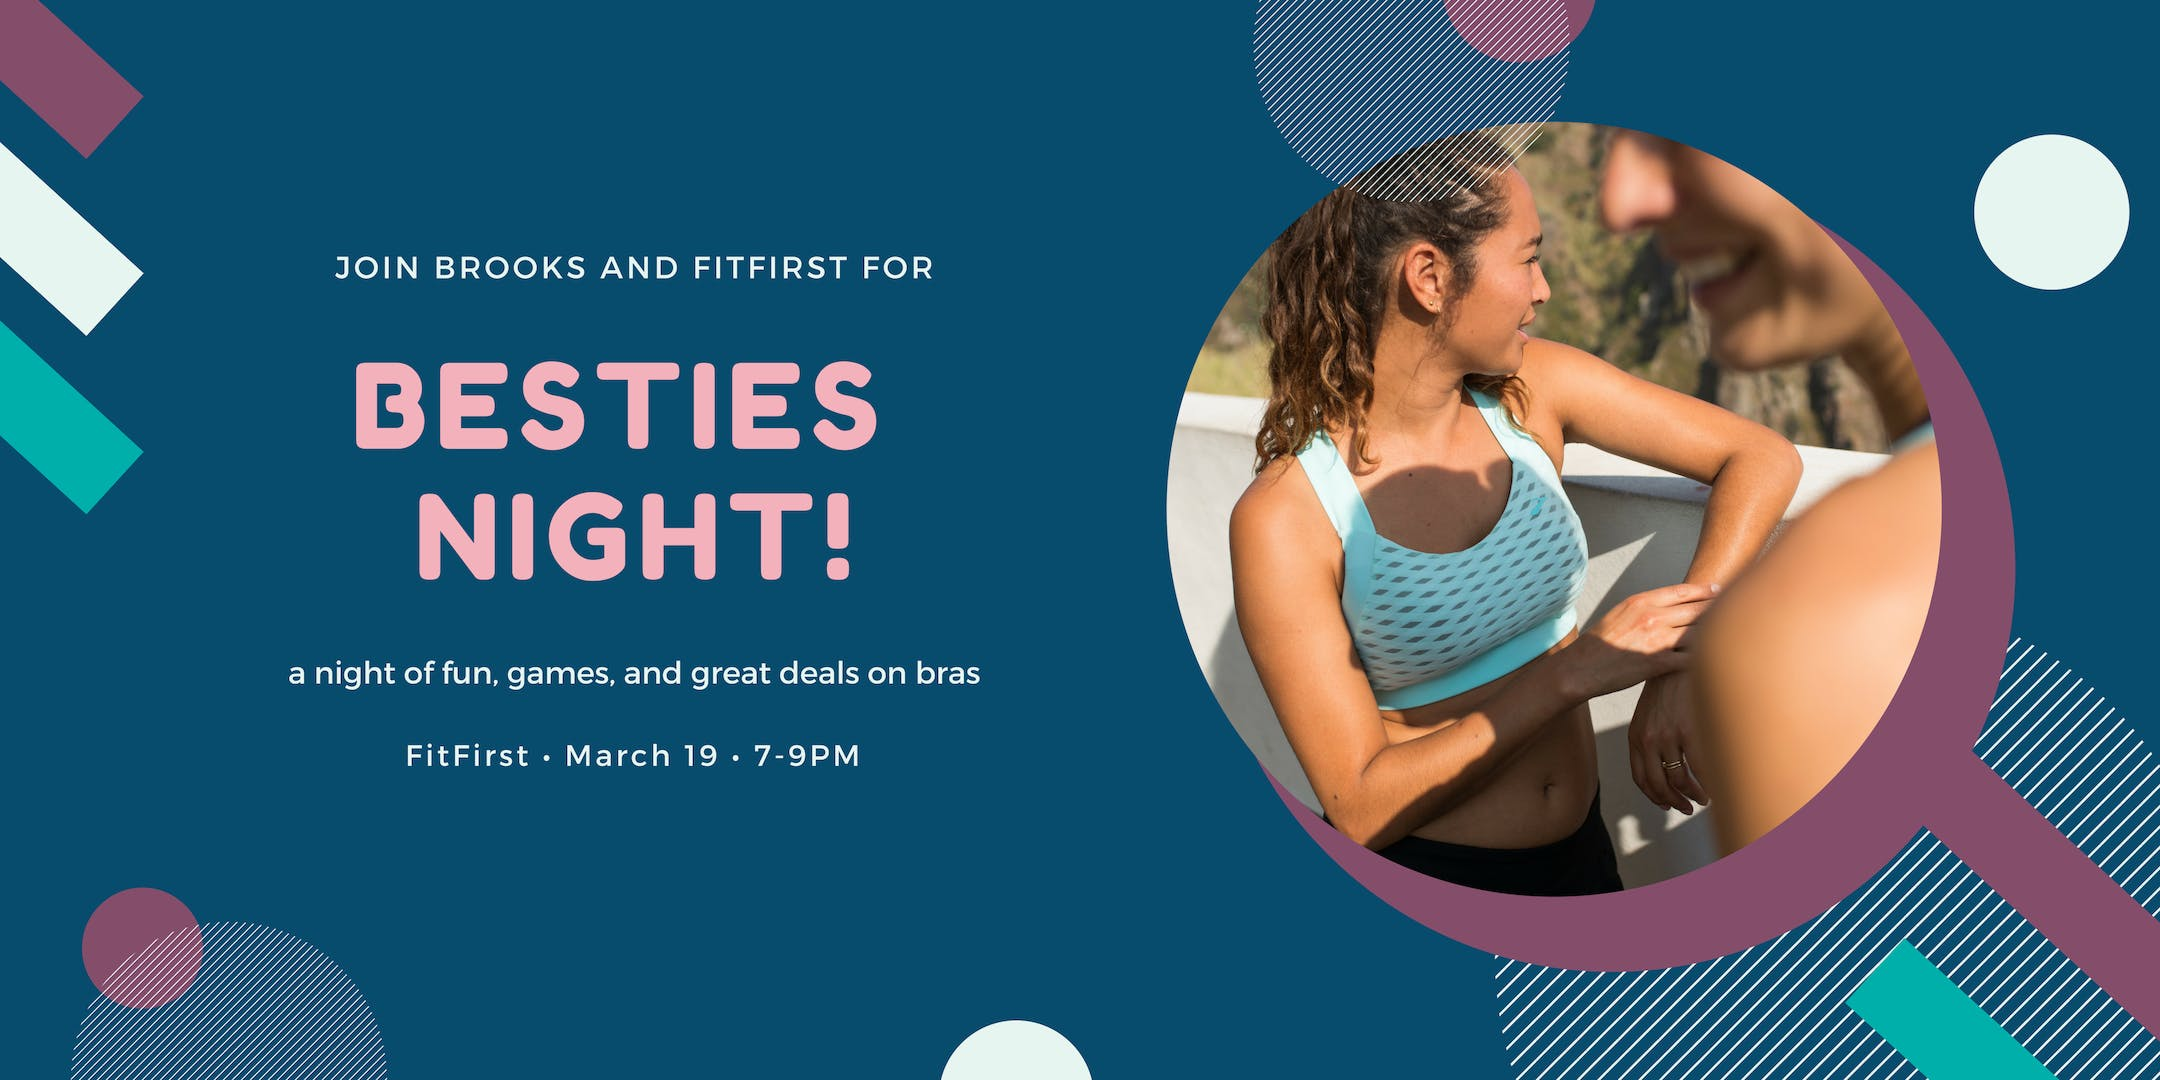 Brooks x FitFirst Footwear Besties Night!